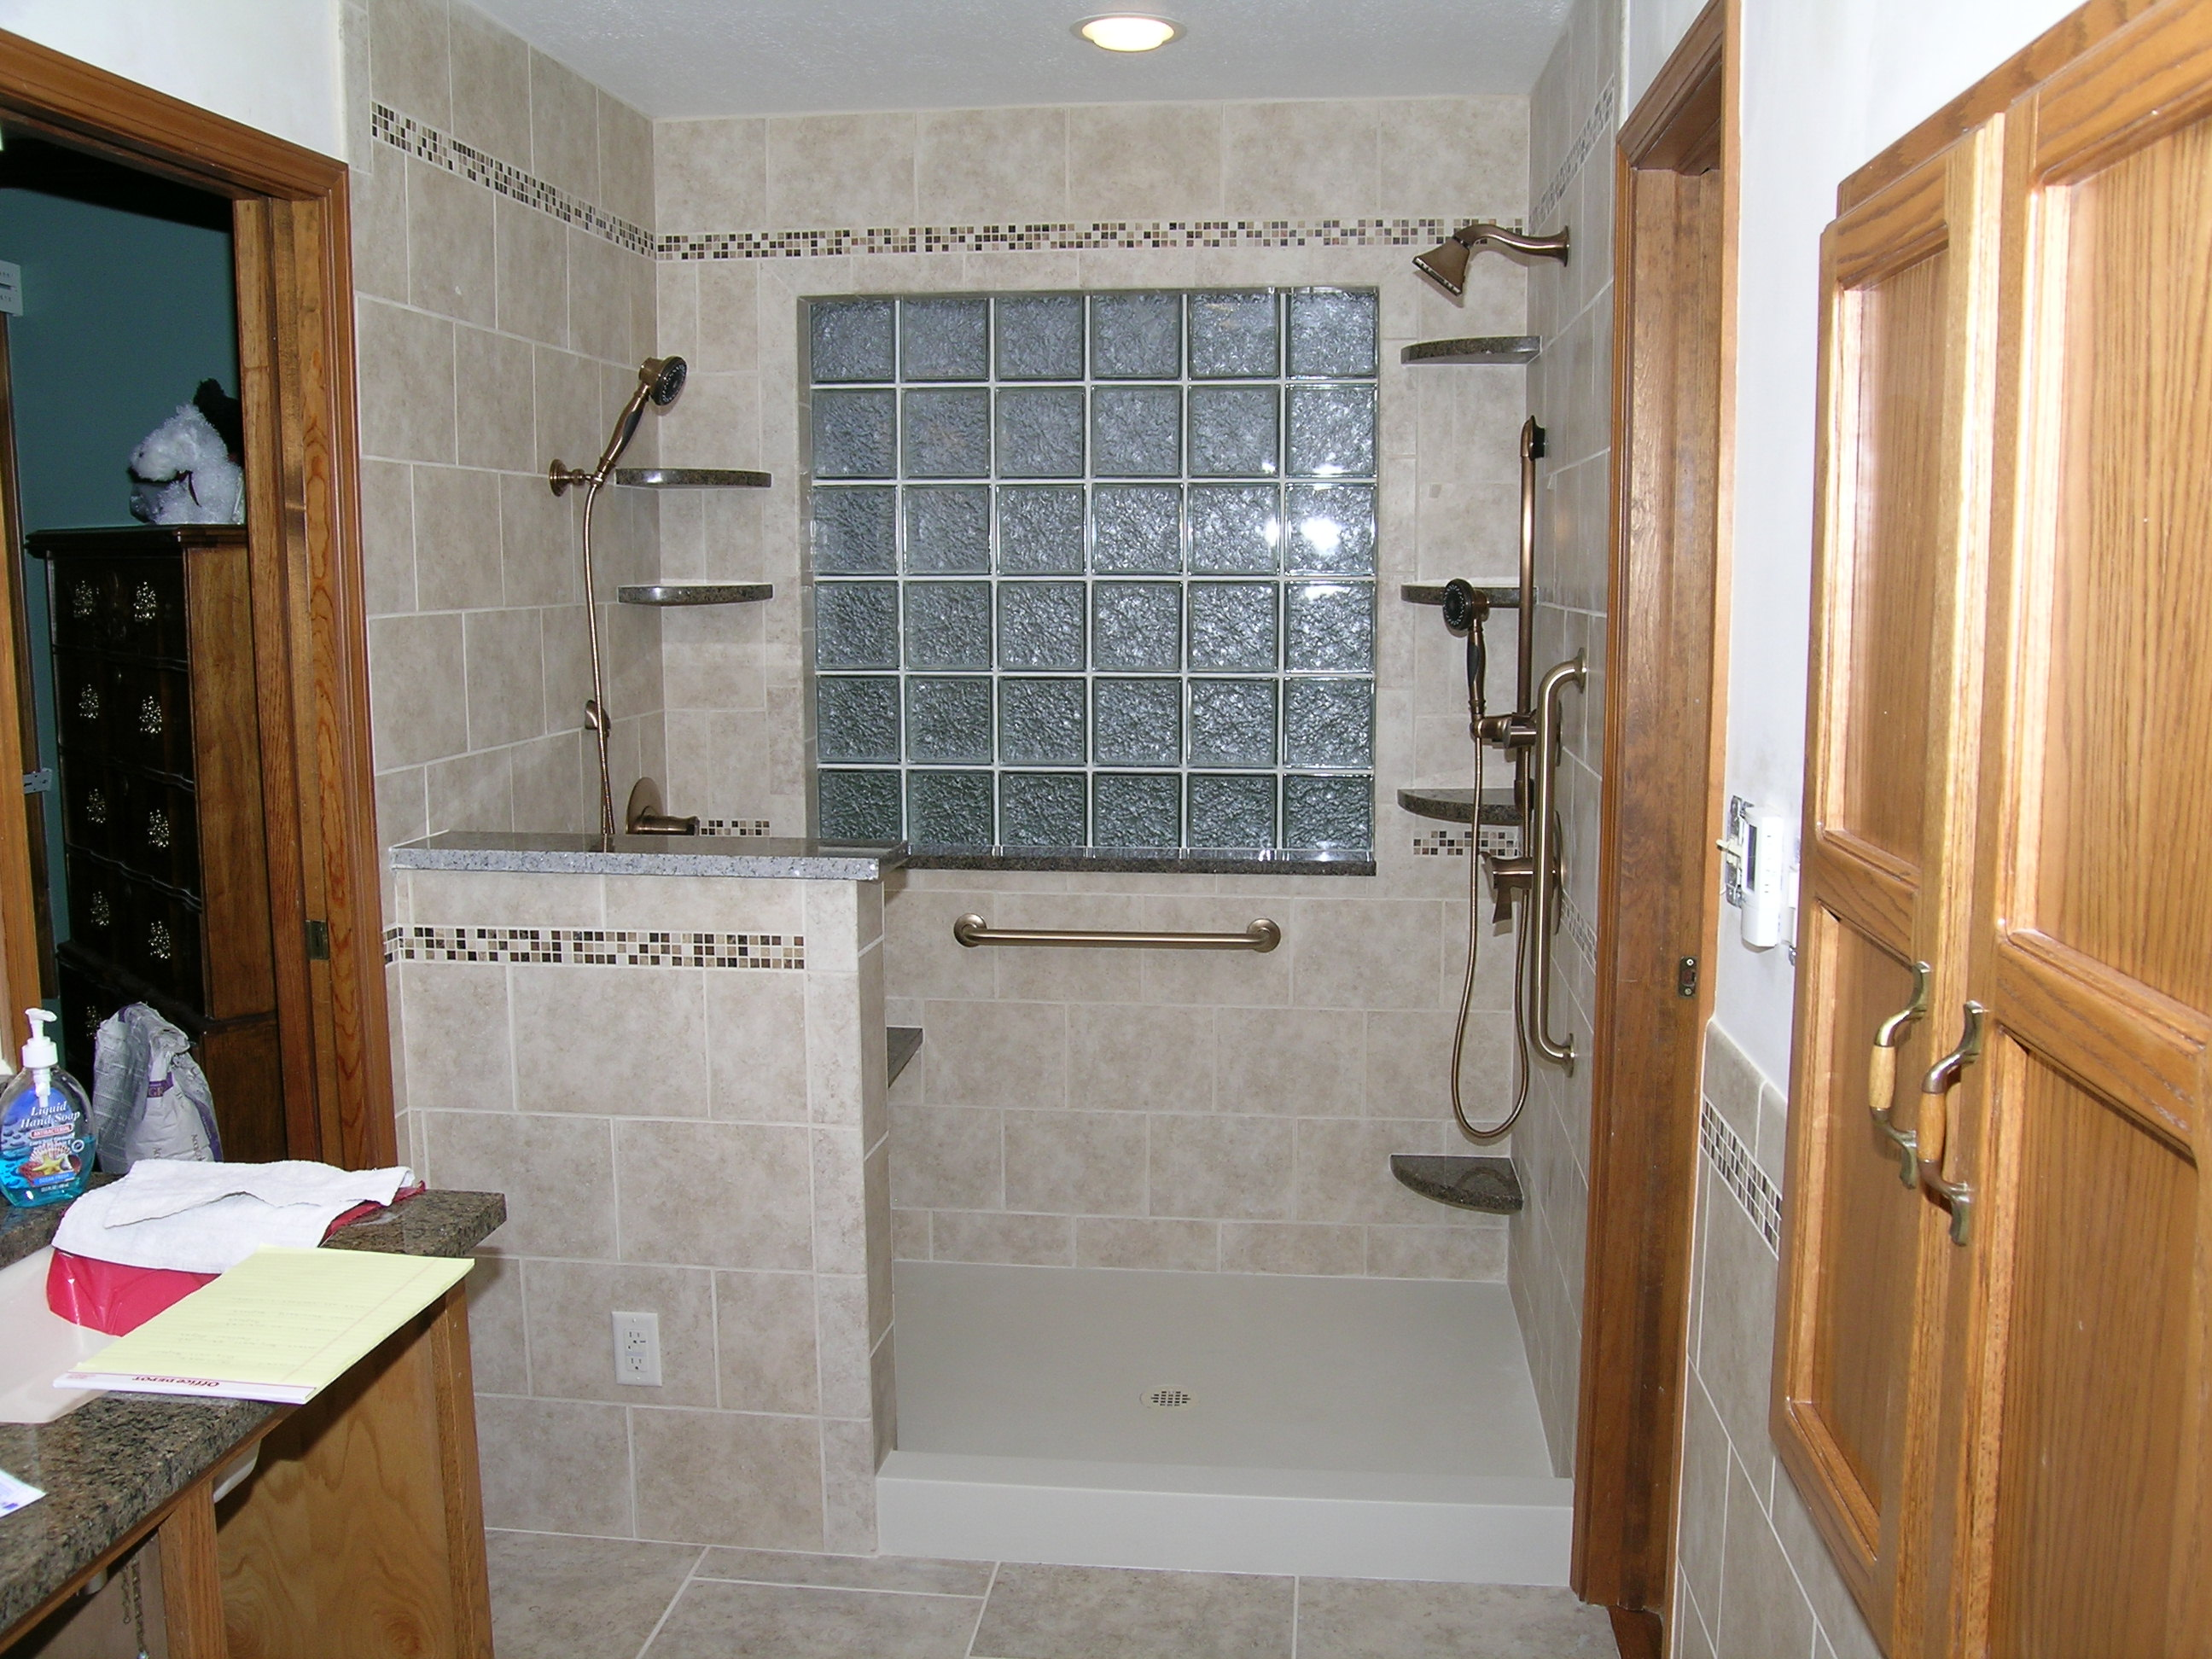 Updike Bathroom Remodeling Indianapolis In 46227 Angies List